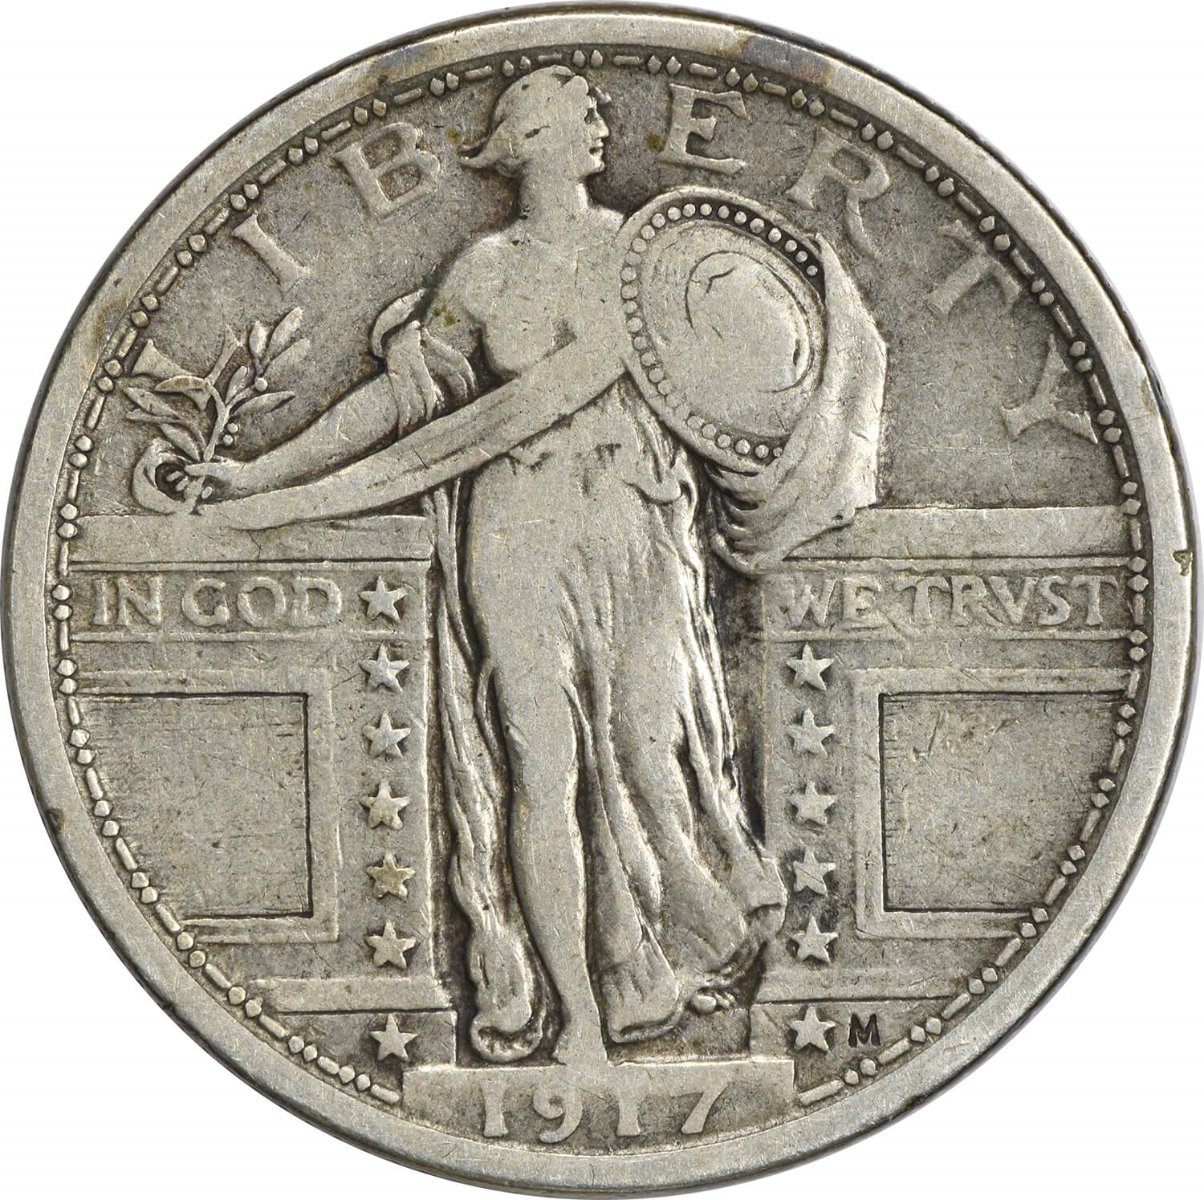 1917 Standing Liberty Silver Quarter Type 1 VF Uncertified